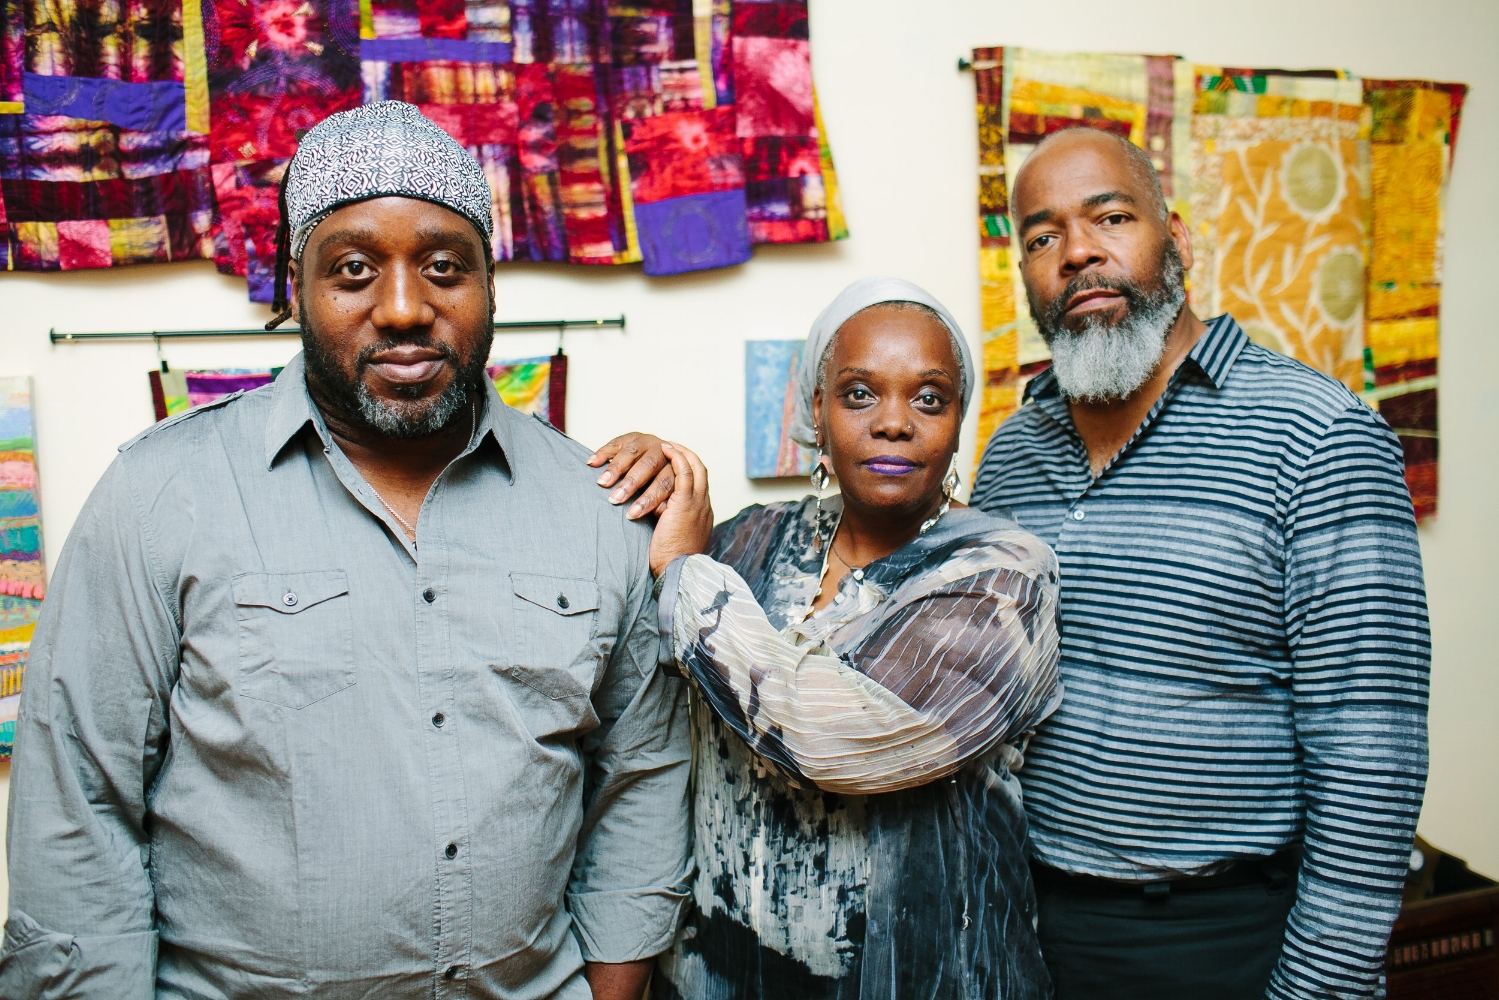 (l to r) Michael Clemmons, Vashti DuBois, and Ian Friday. Photo Zamani Feelings